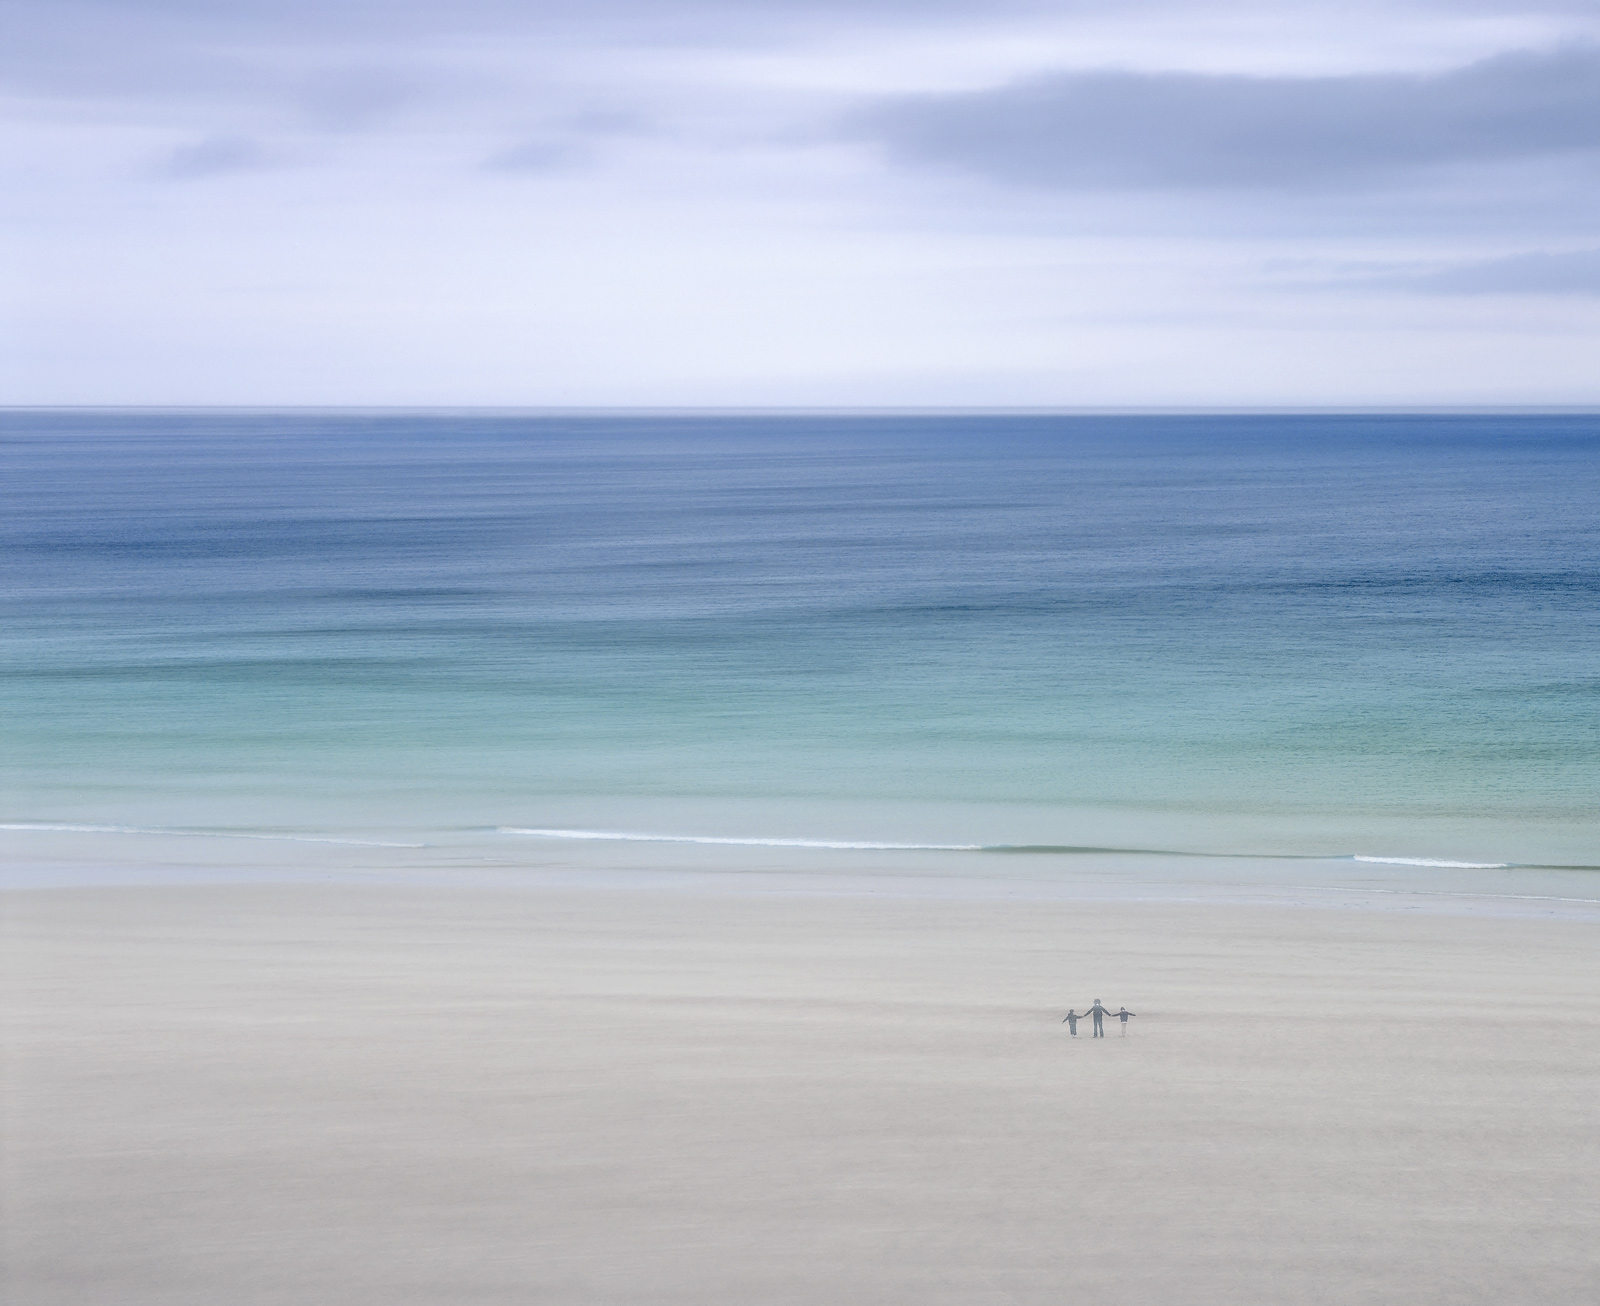 I was travelling north for a short holiday with my wife and two children and we found some stunning beaches around Durness including...